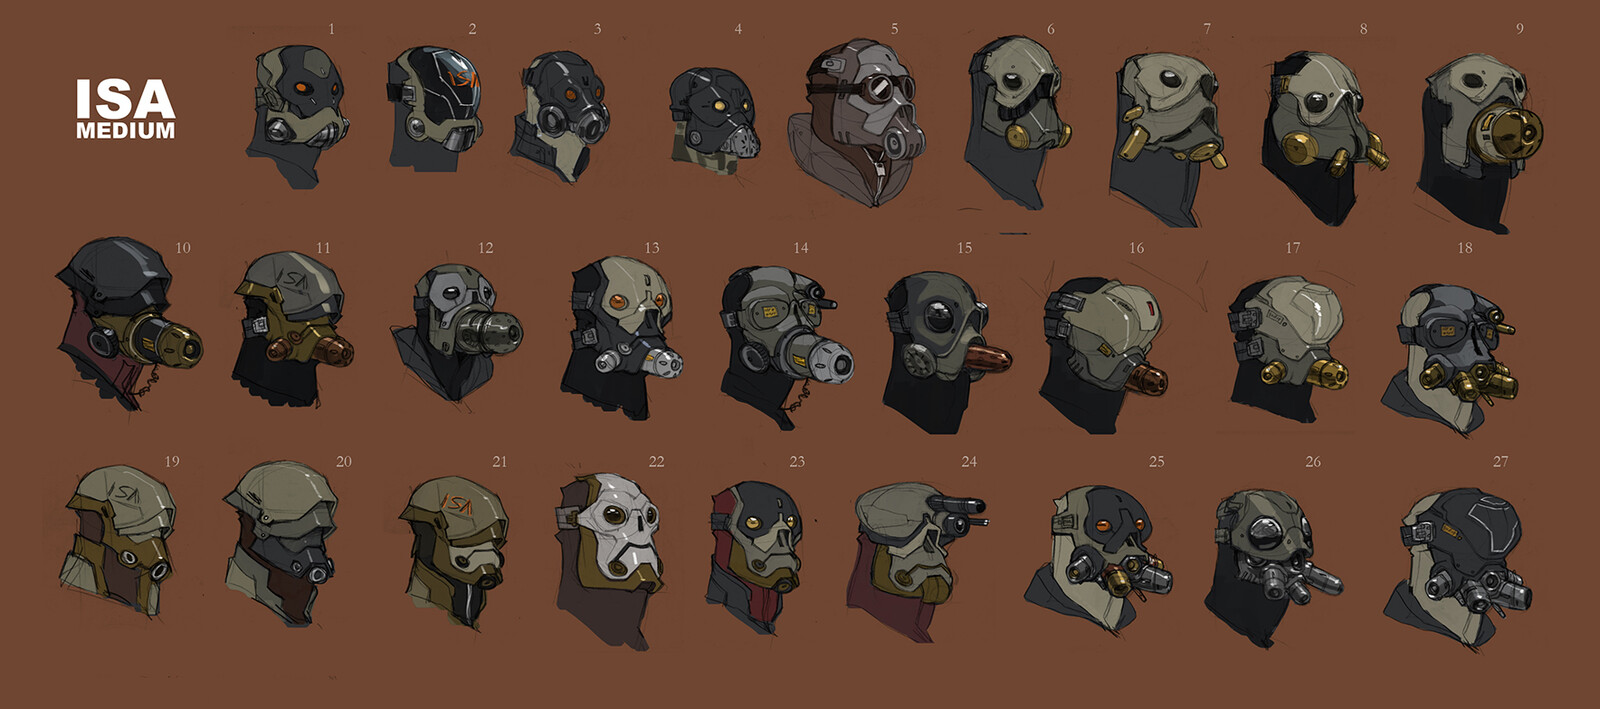 Assorted helmets. Some of these were salvaged and repurposed by Mass Effect.